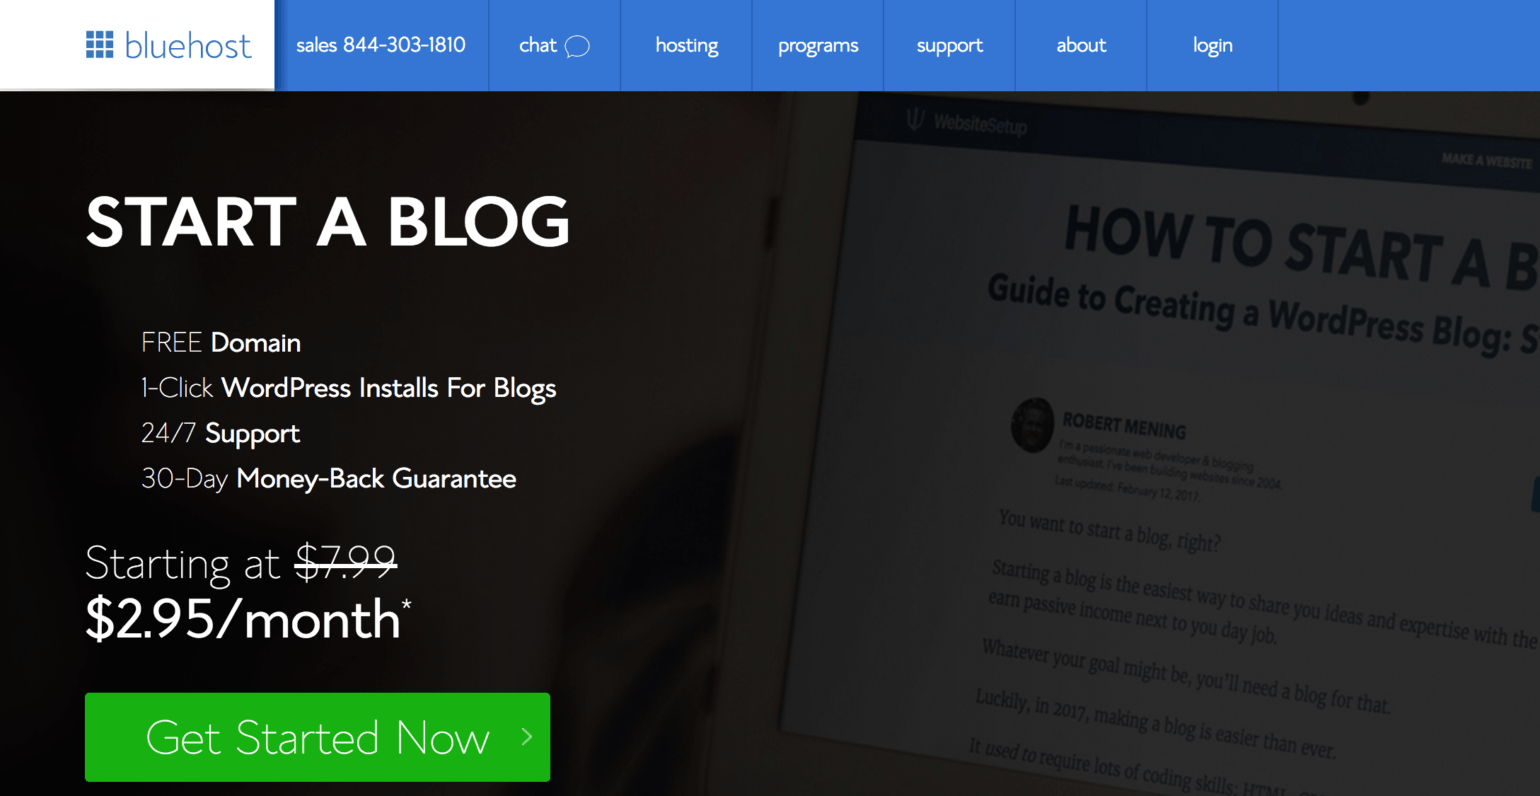 how to start a blog 7 easy steps to create a blog images bluehost